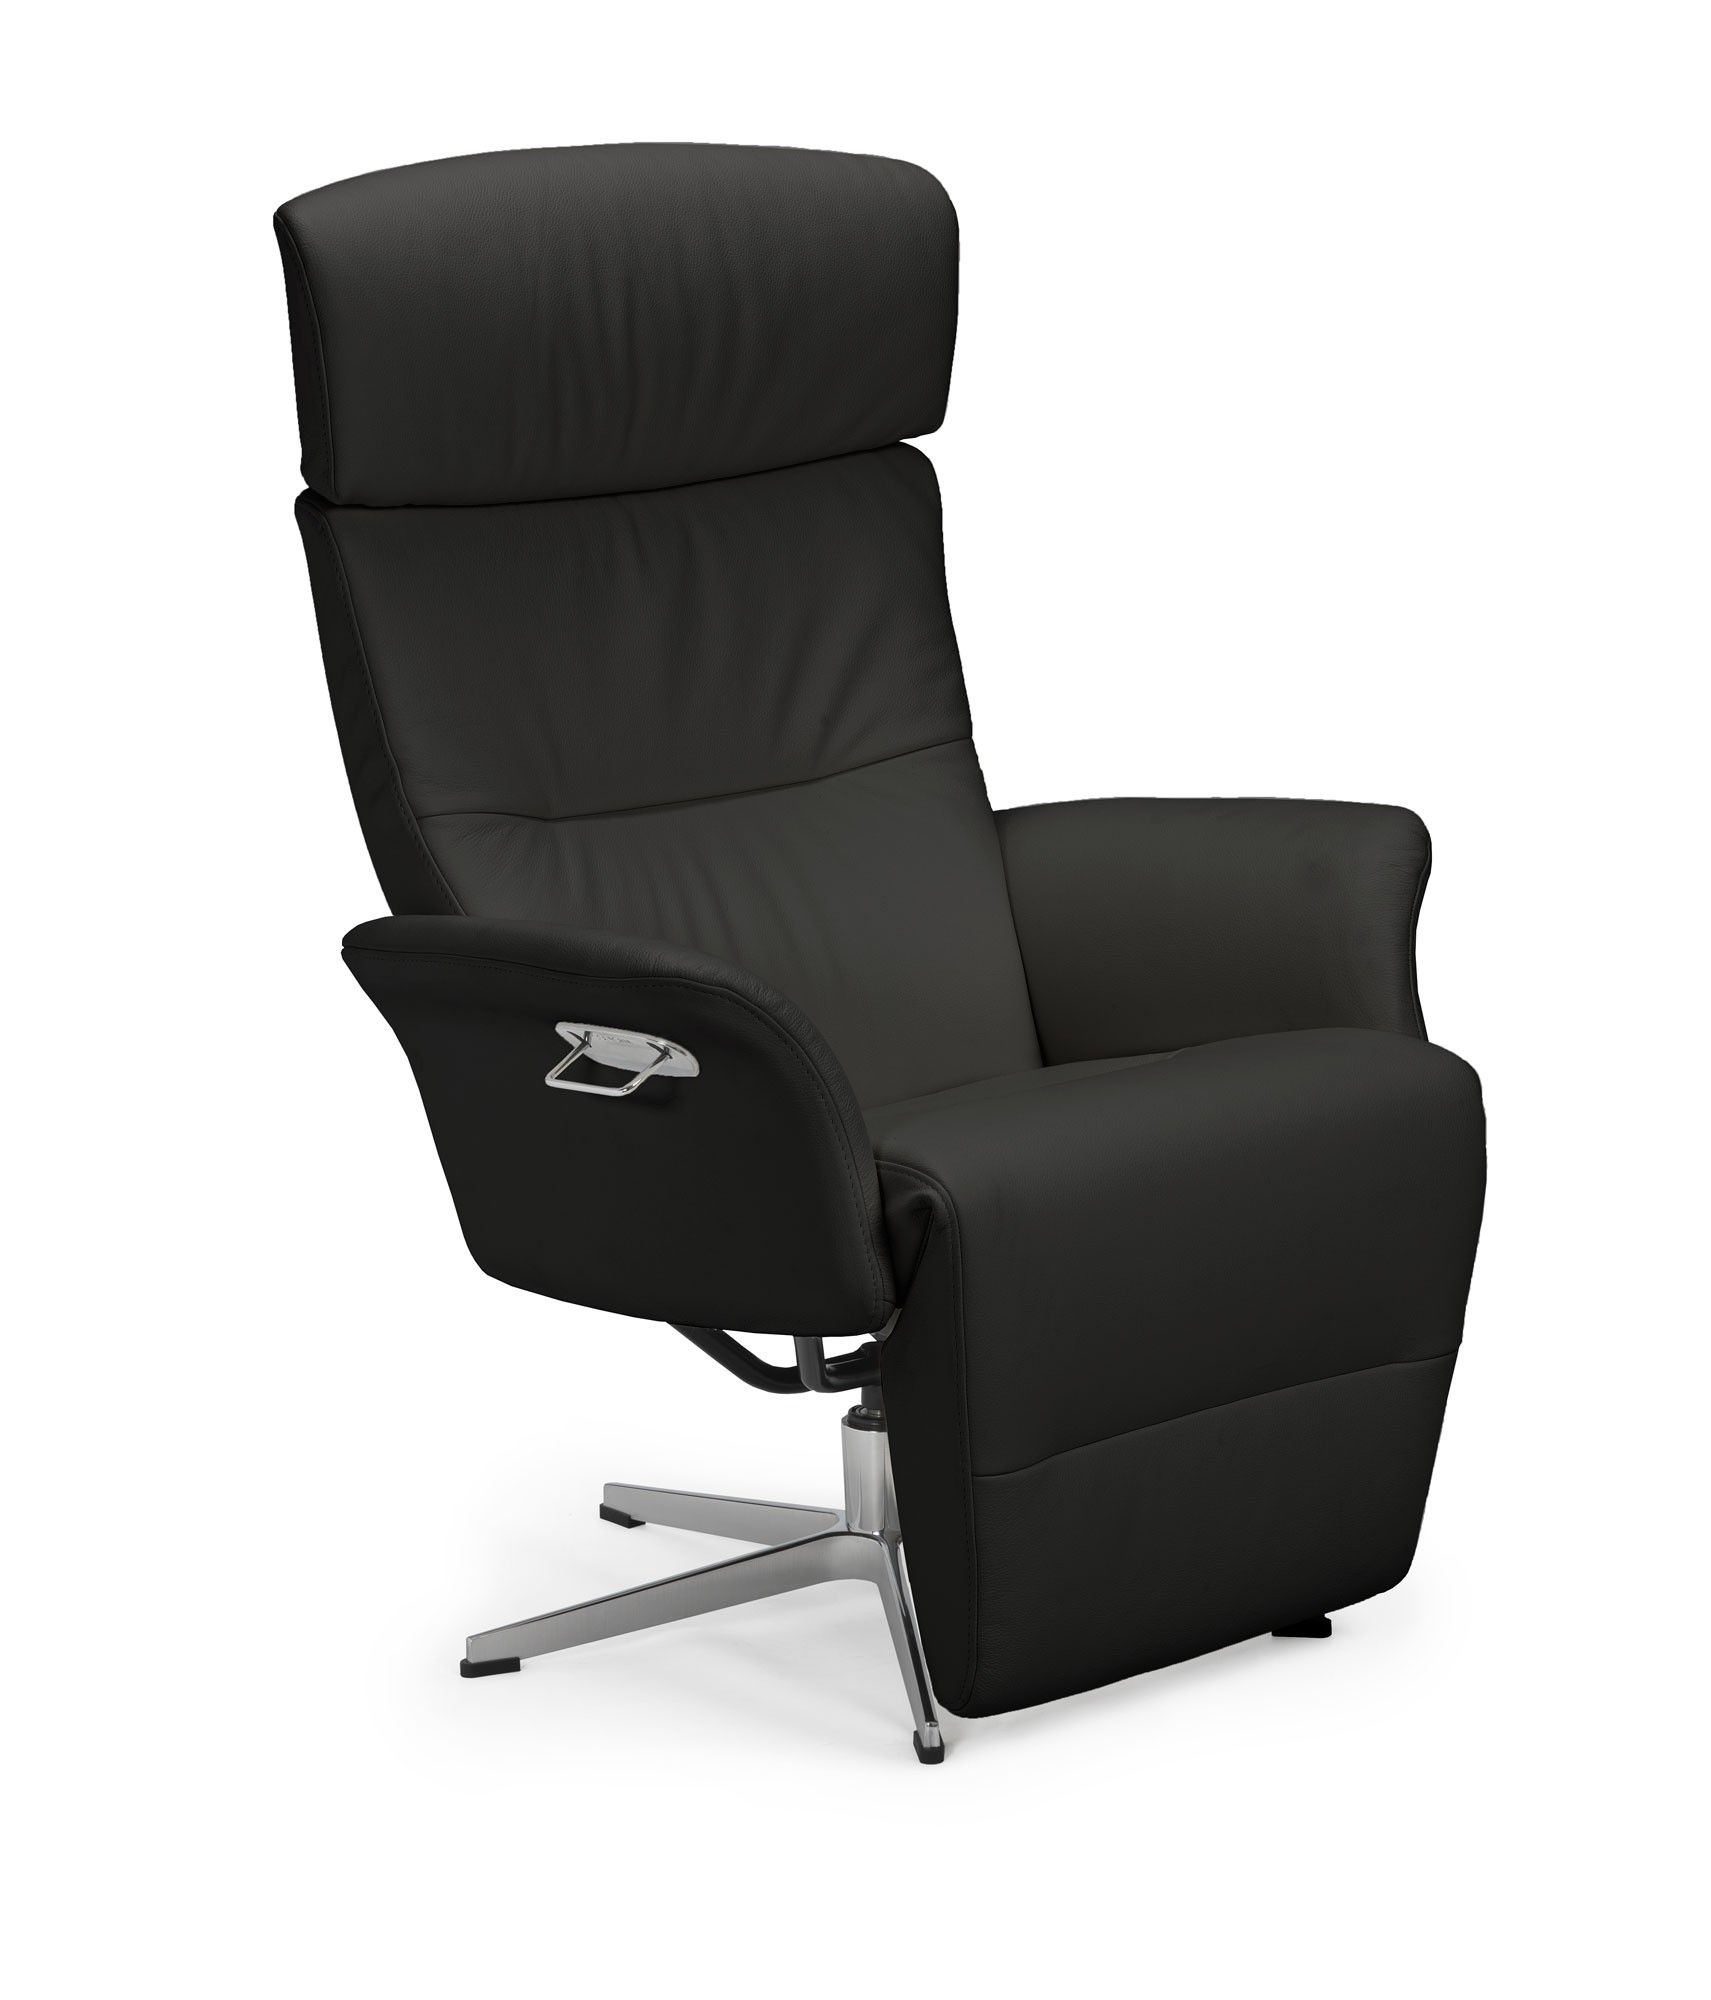 Master Crossfoot Swivel Chair | Tr Hayes – Furniture Store, Bath With Regard To Leather Black Swivel Chairs (View 6 of 25)